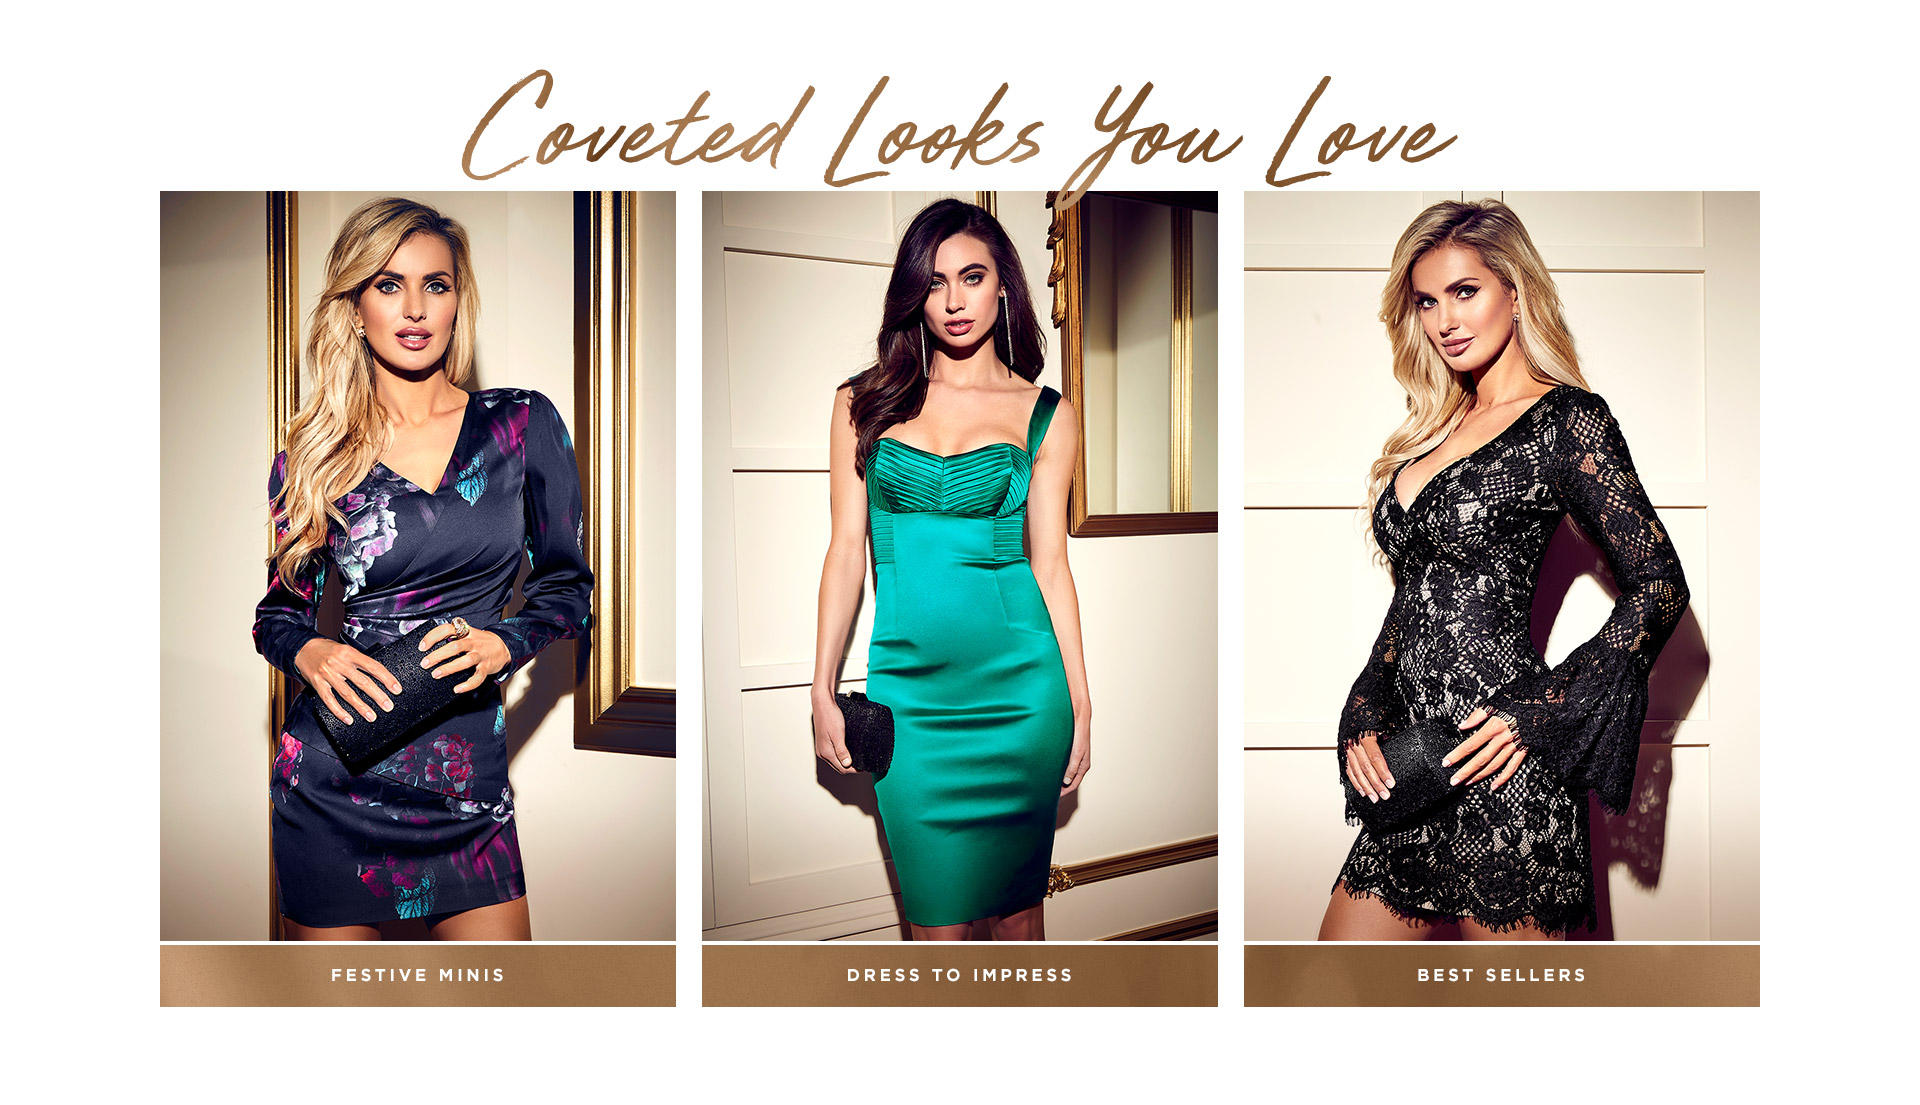 Coveted Looks you love